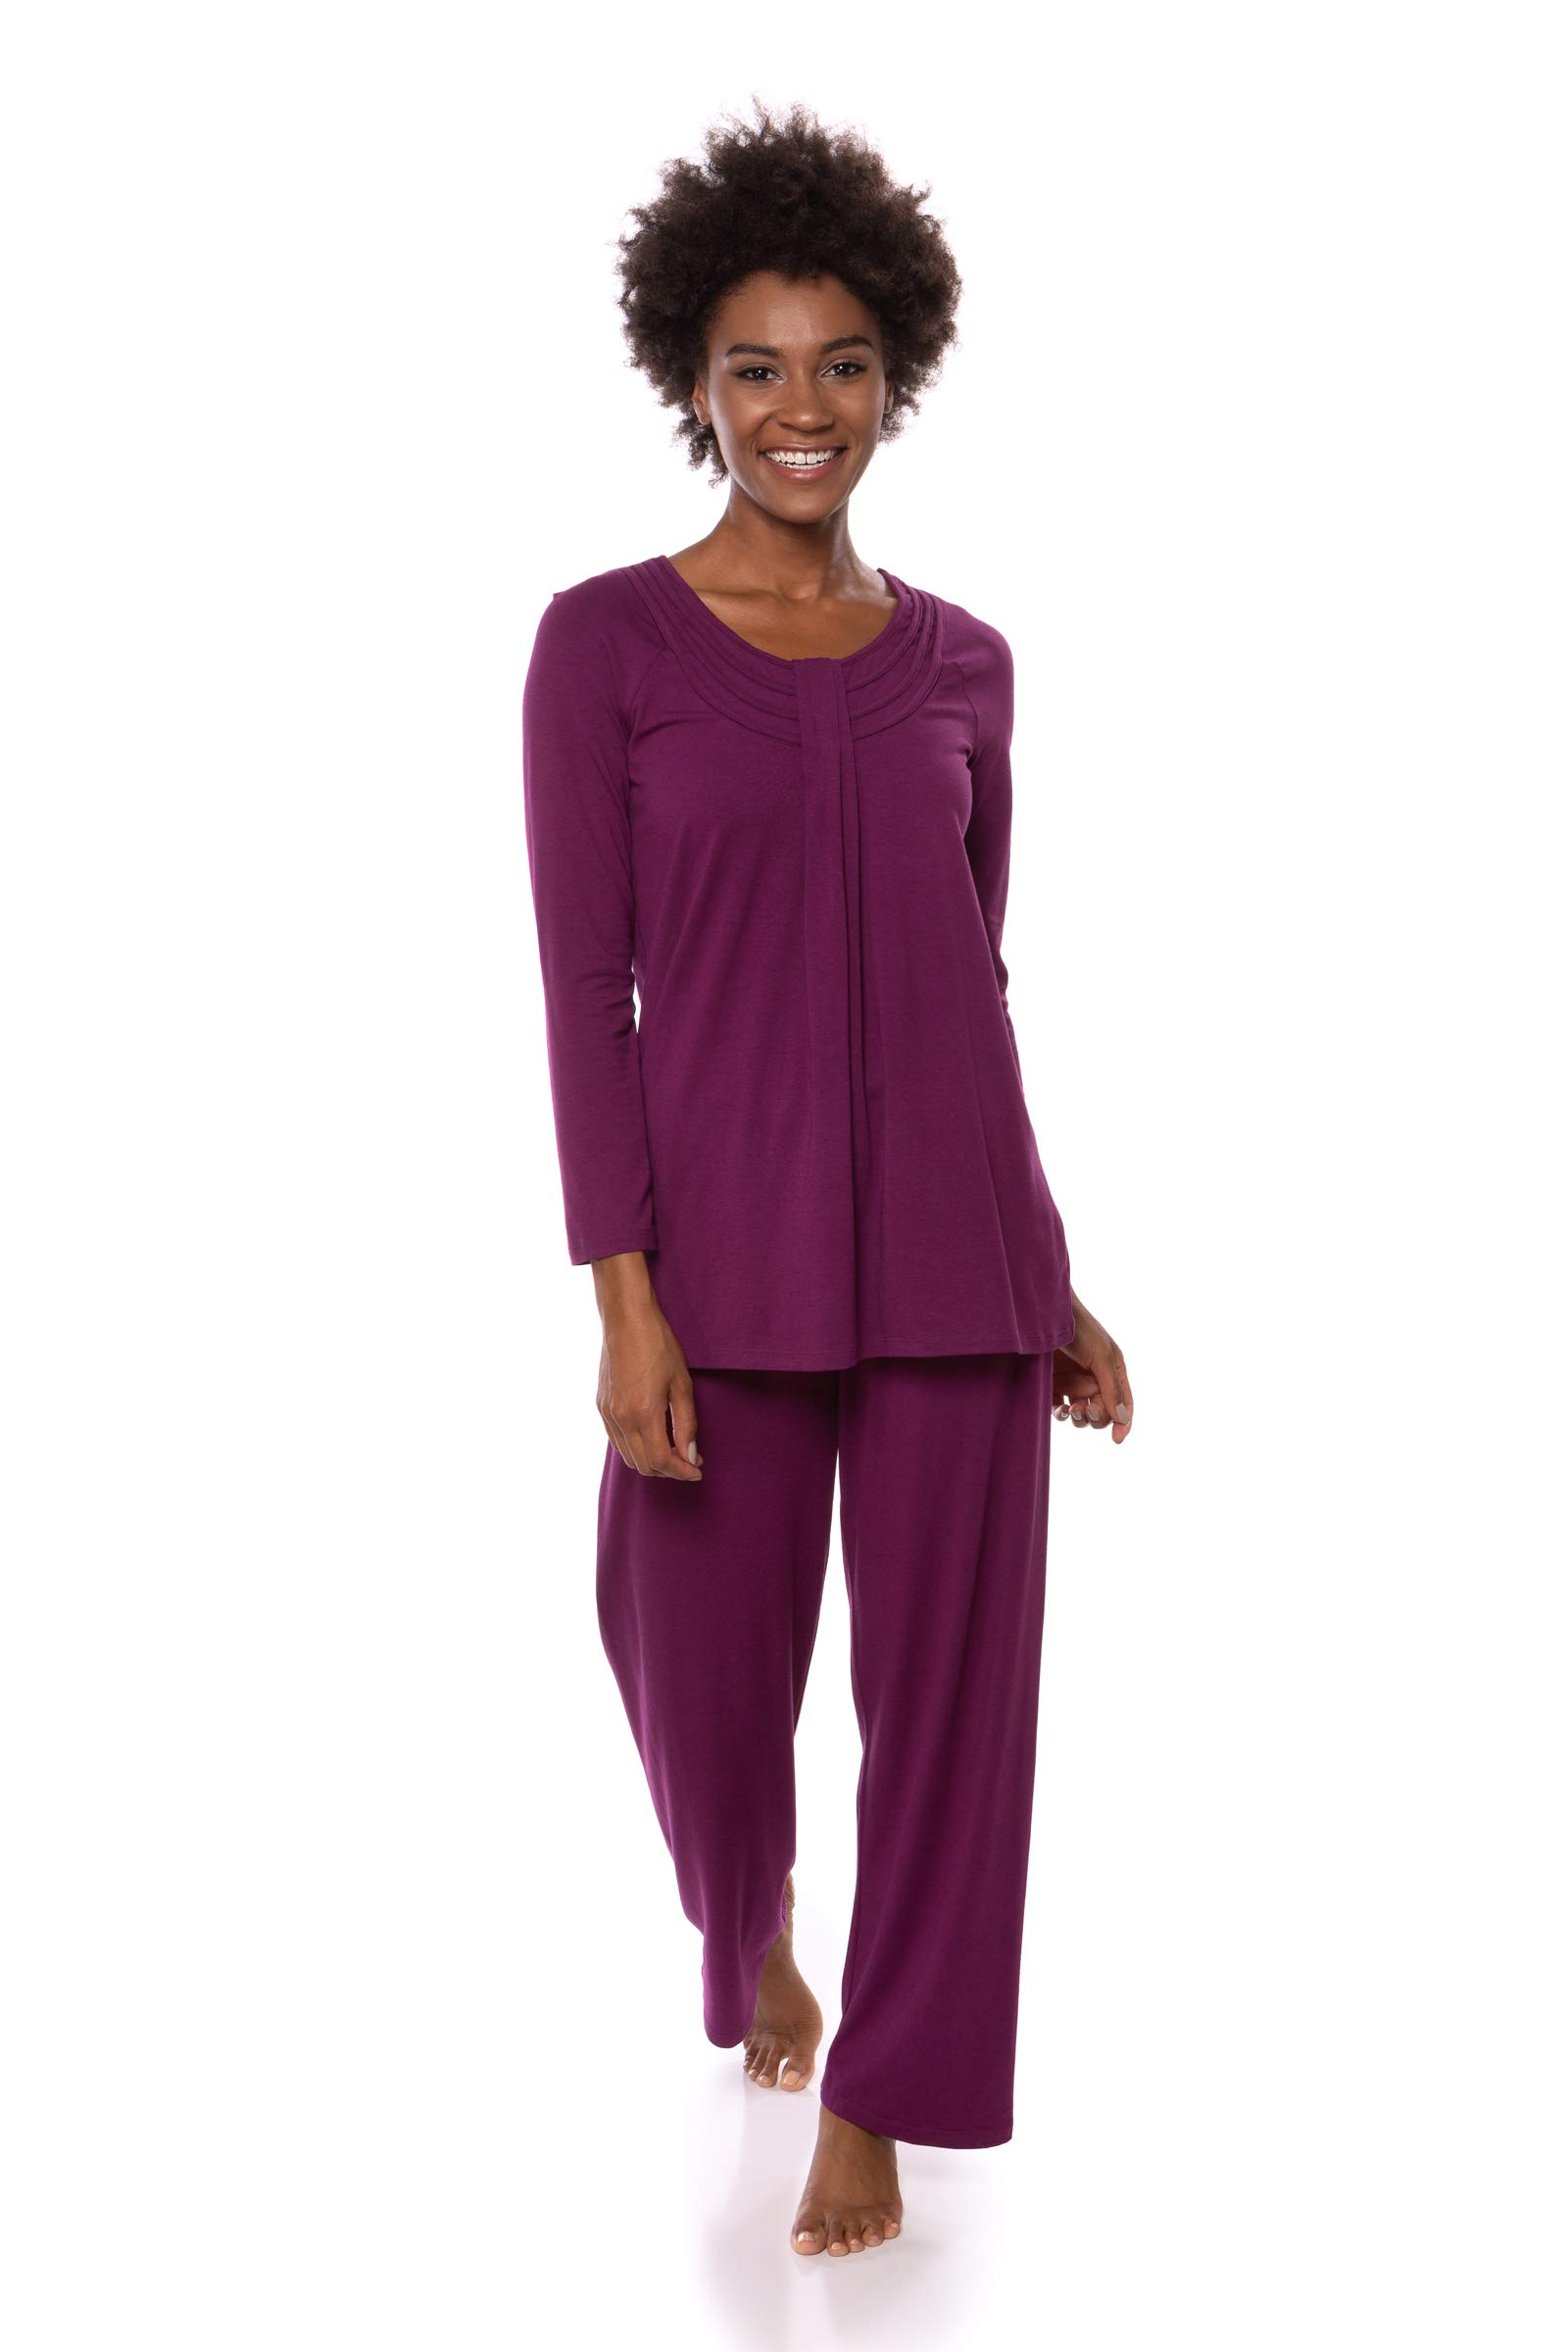 Women's Long Sleeve PJs in Bamboo Viscose (Replenish, Concord Grape, Medium/Petite) Classic Sleepwear for Her WB0006-CON-MP by TexereSilk